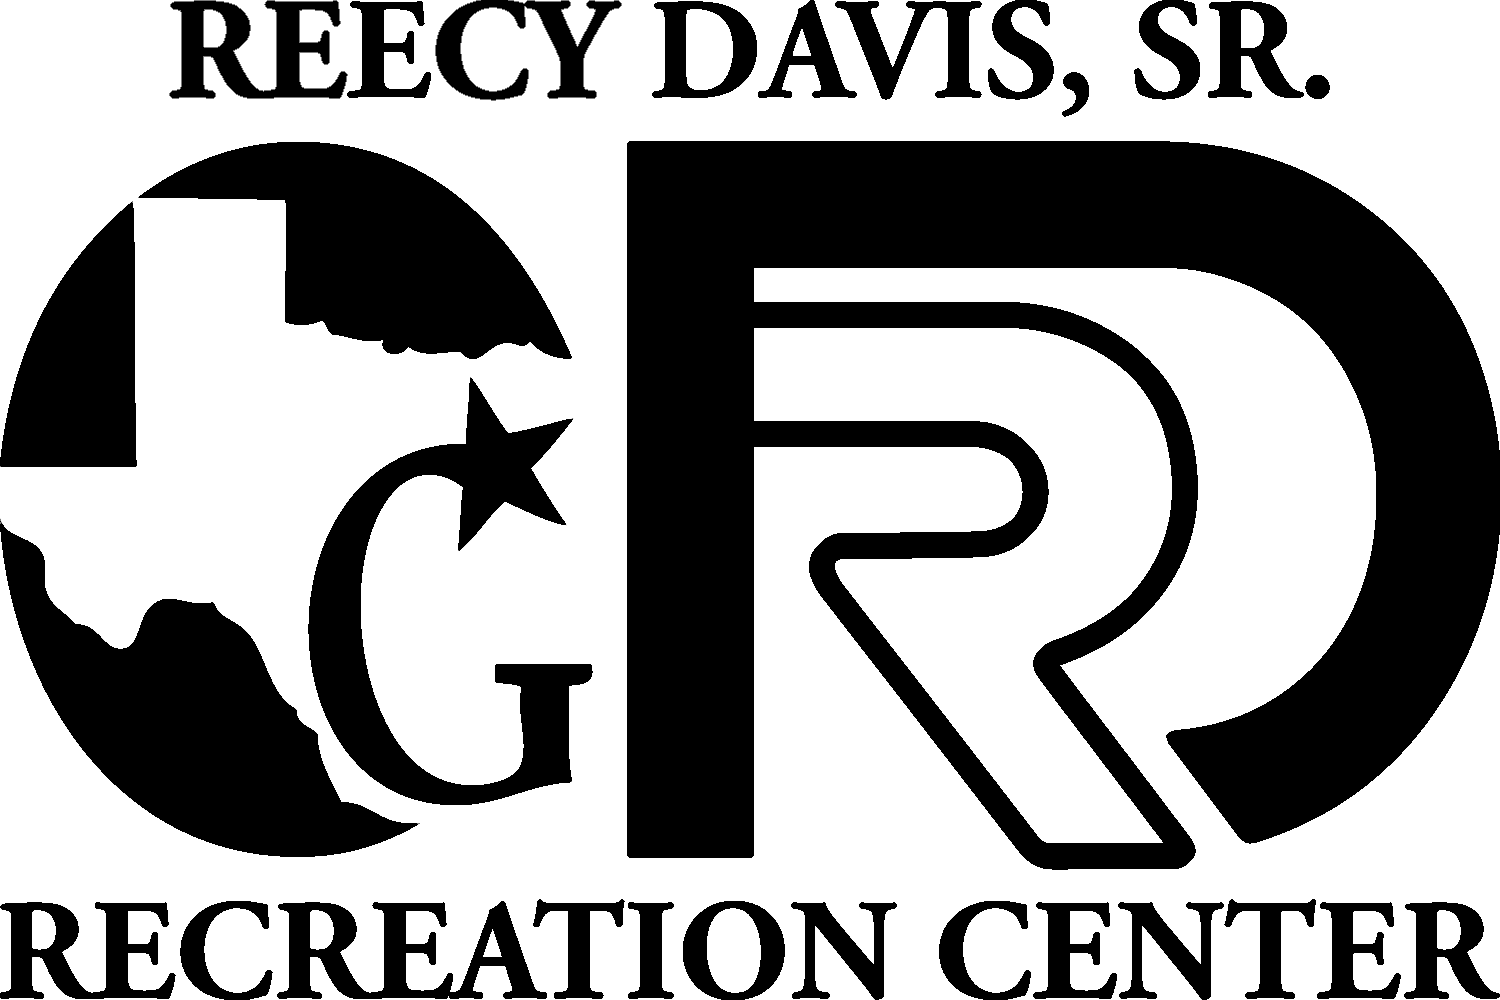 Final 2020 Reecy Davis Logo Opens in new window